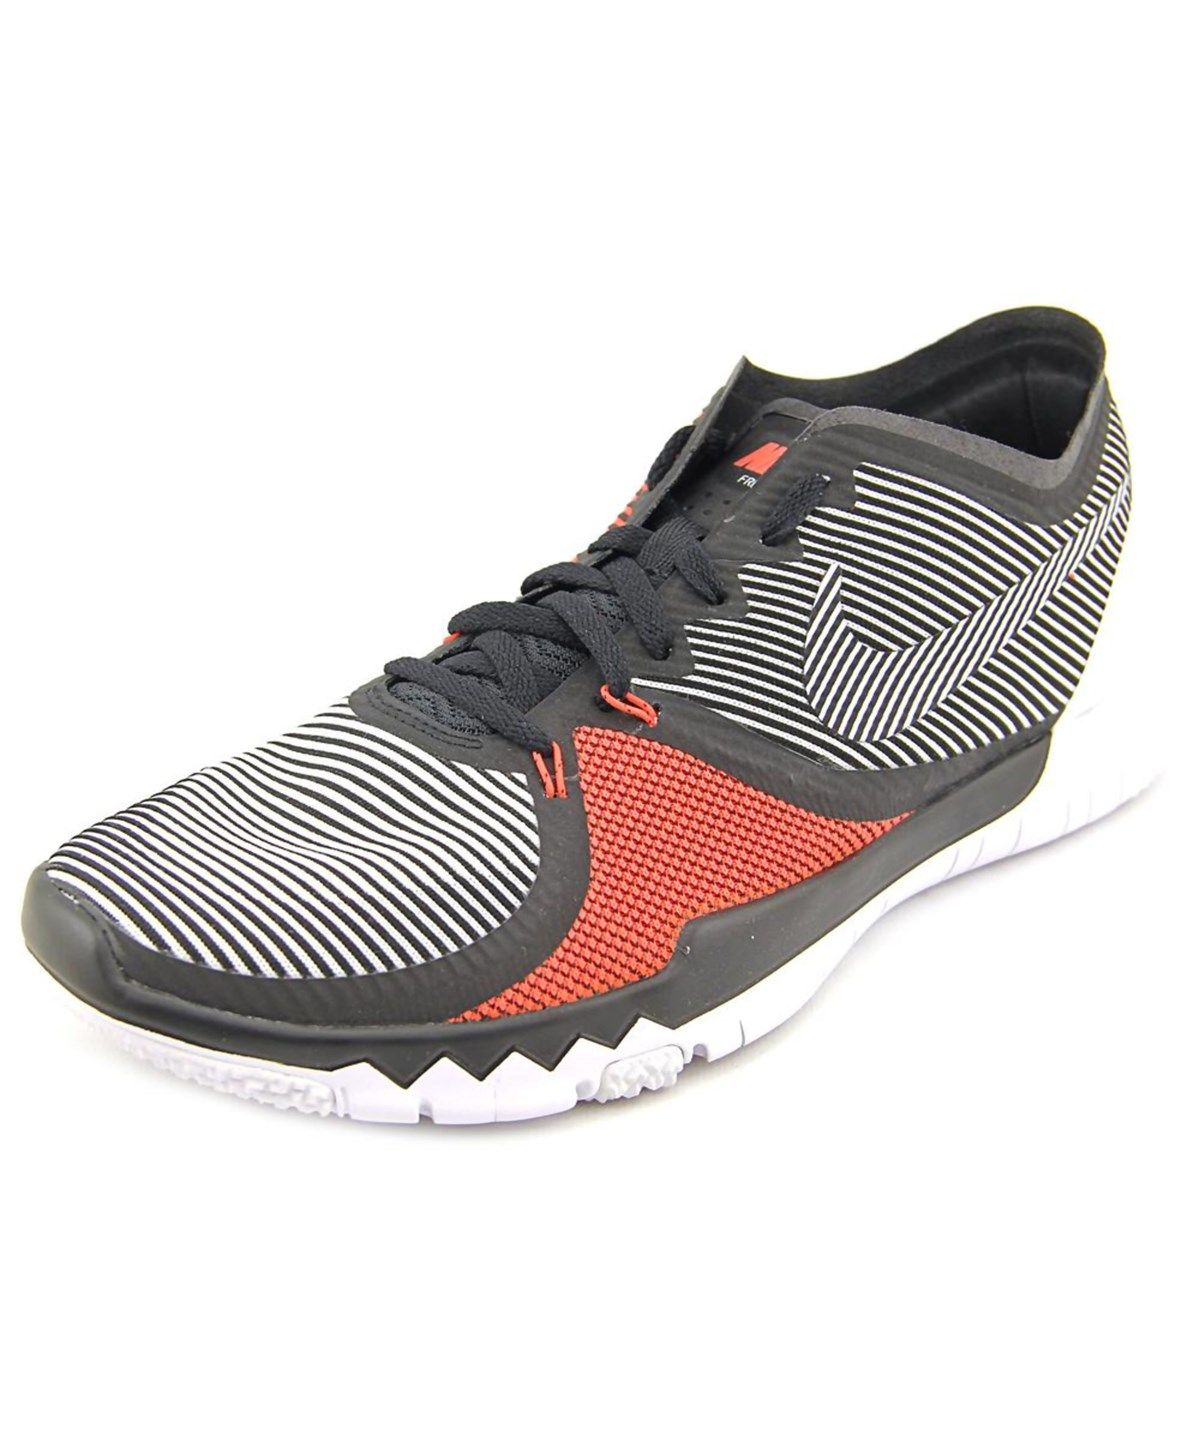 size 40 07db8 6fff4 ... nike nike free trainer 3.0 v4 men round toe synthetic running shoe.